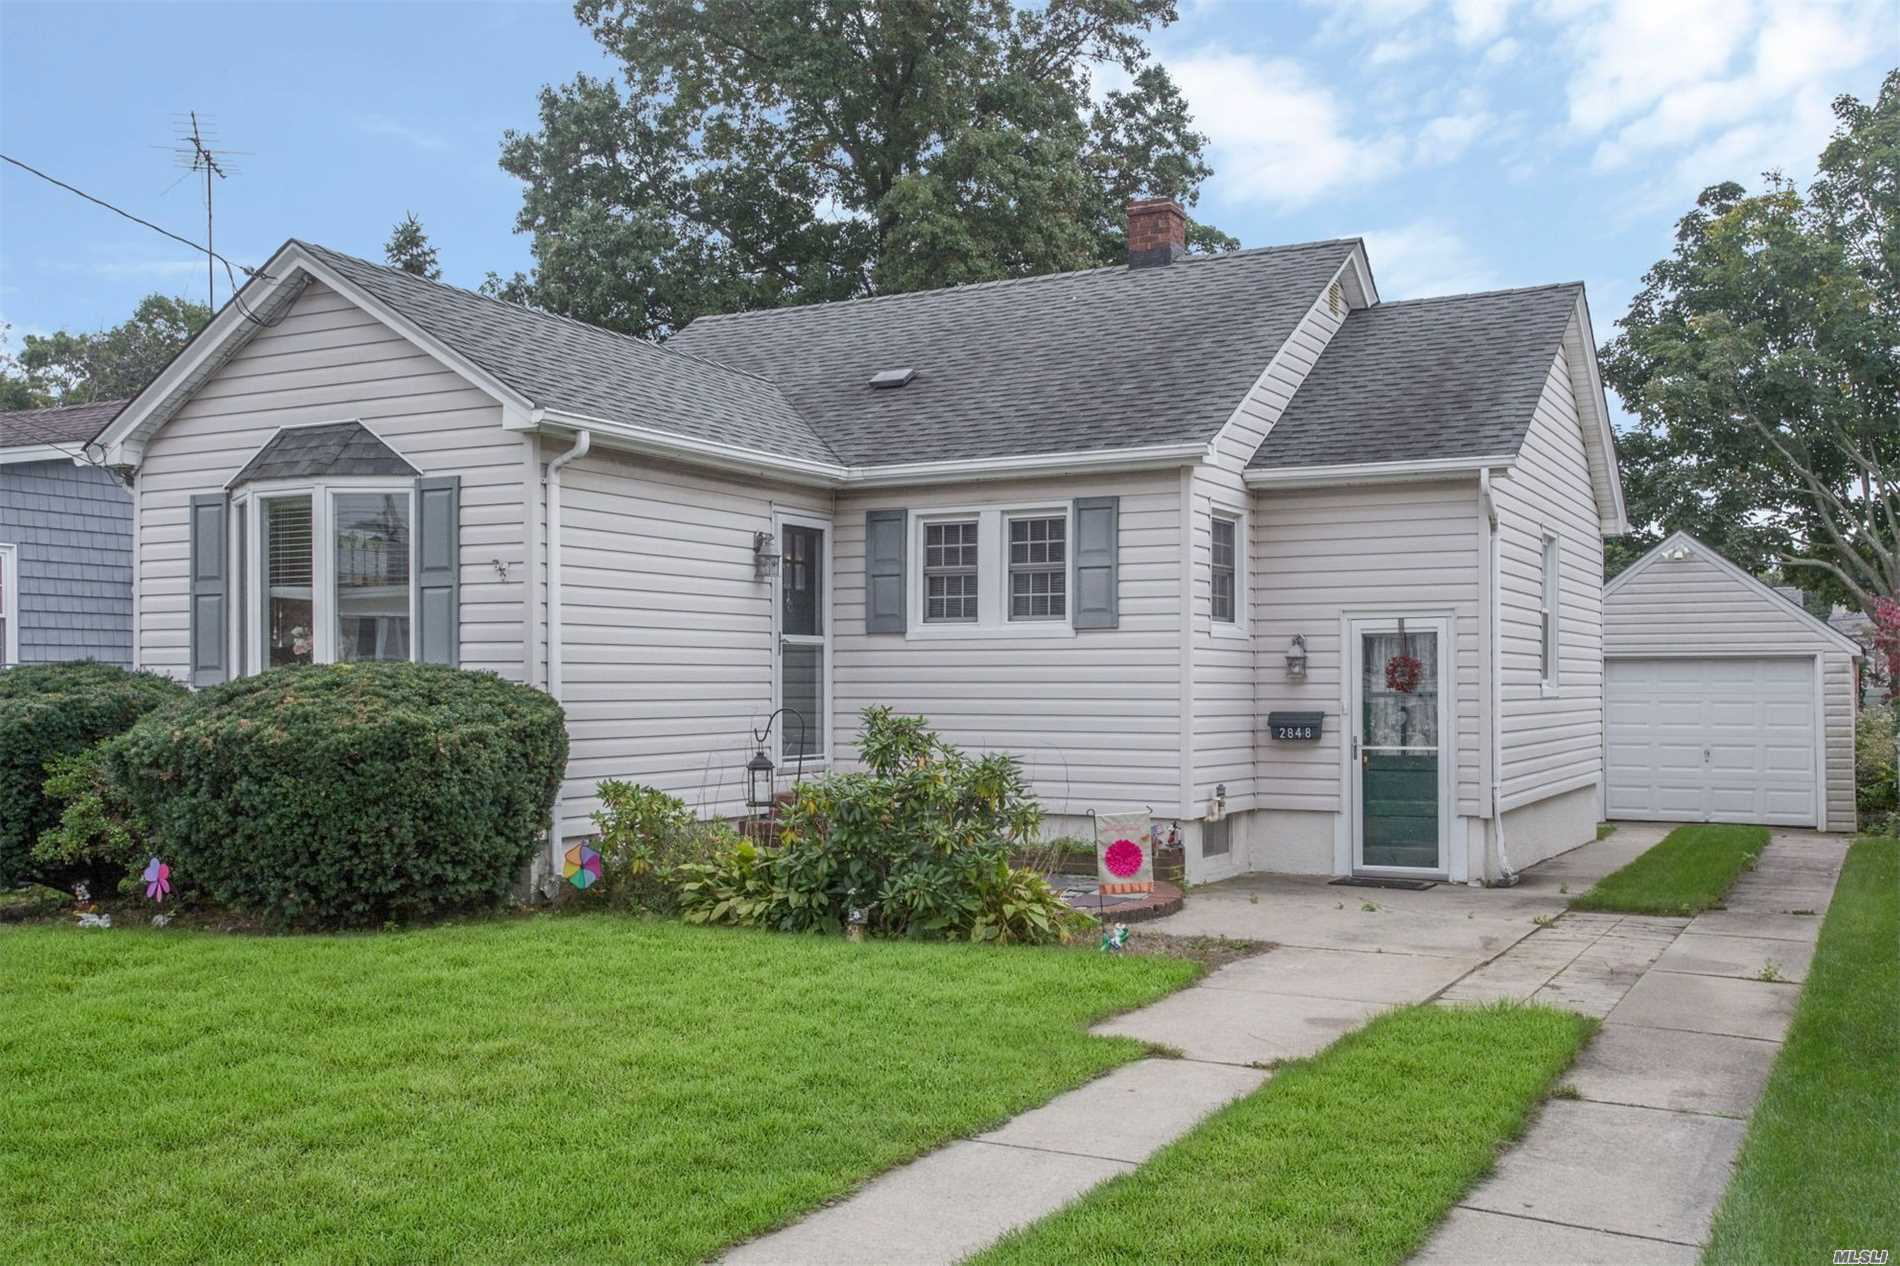 Amazing 2 Bedroom Bungalow In Bellmore. Home Boasts An Enclosed Porch, Hardwood Floors, Basement, Spacious Backyard Area For Entertaining. Taxes Are Only $6485.74. Minutes To Lirr, Shops, And Restaurants. 3D Virtual Tour, Floor Plan, & Doll House View Available. See Video Or Virtual Tour Link.